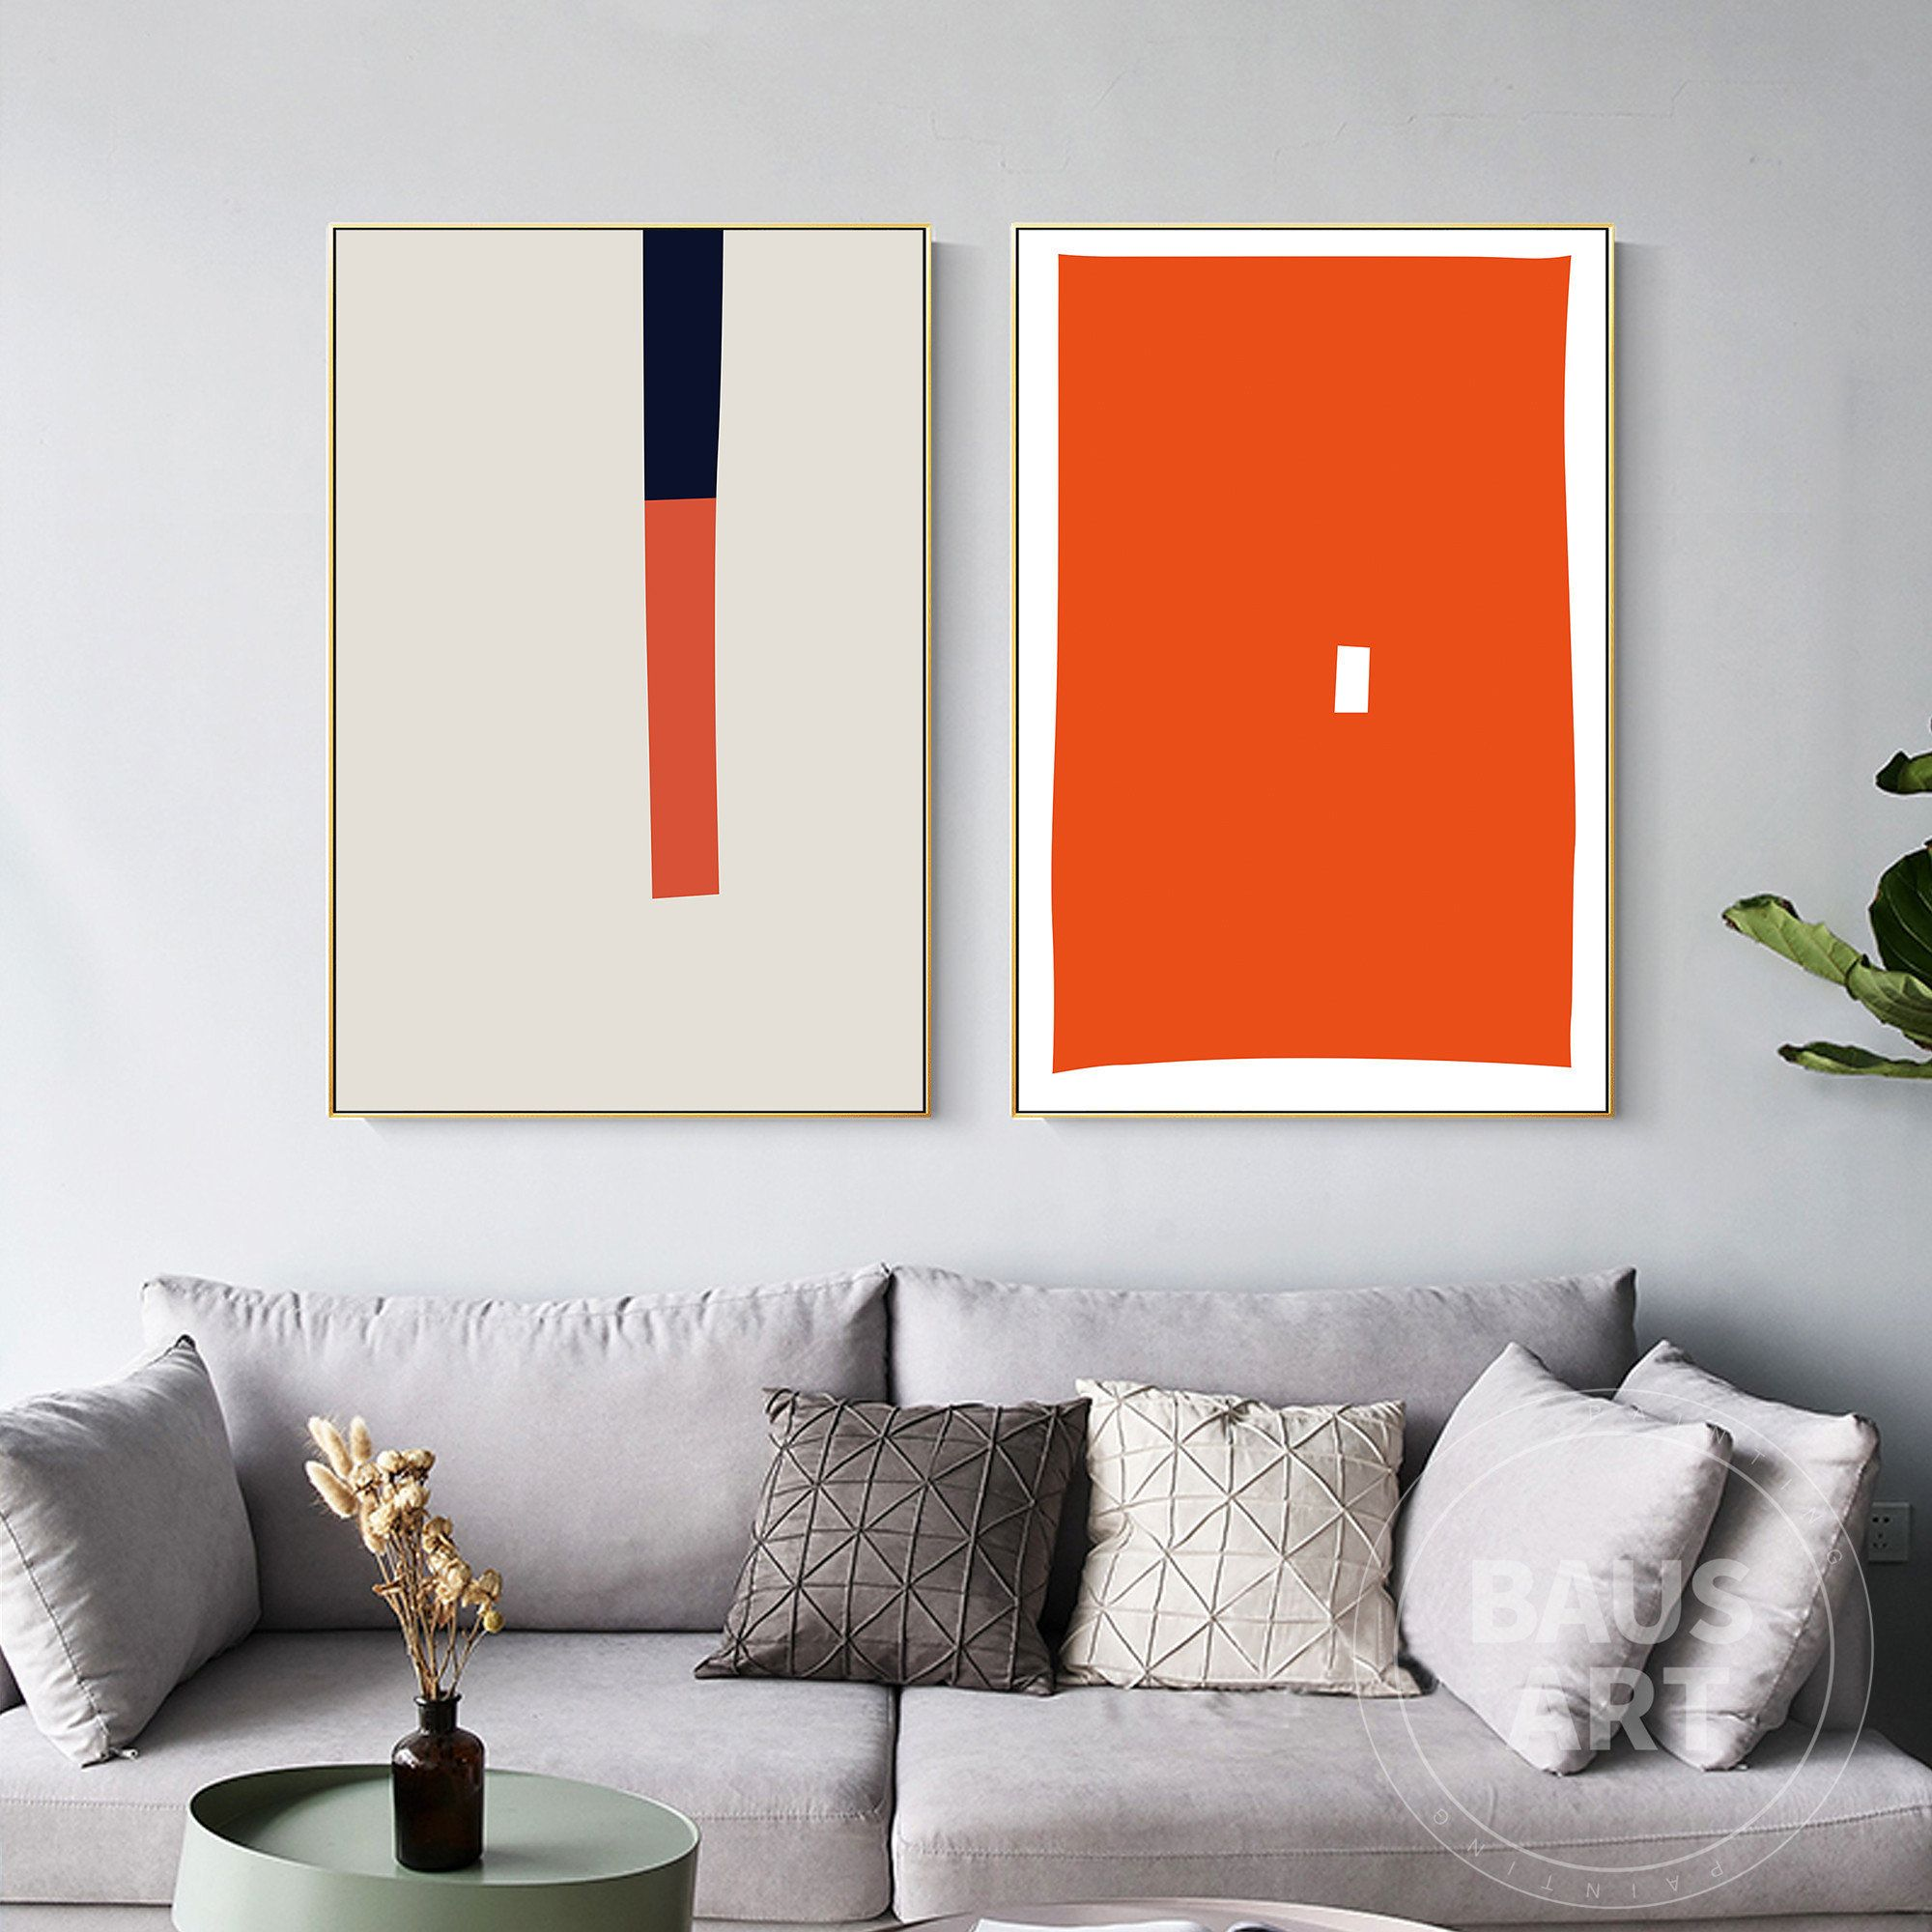 2 Pieces Framed Wall Art Set Of 2 Prints Abstract Geometry Art Etsy In 2021 Framed Wall Art Sets Frames On Wall Framed Wall Art